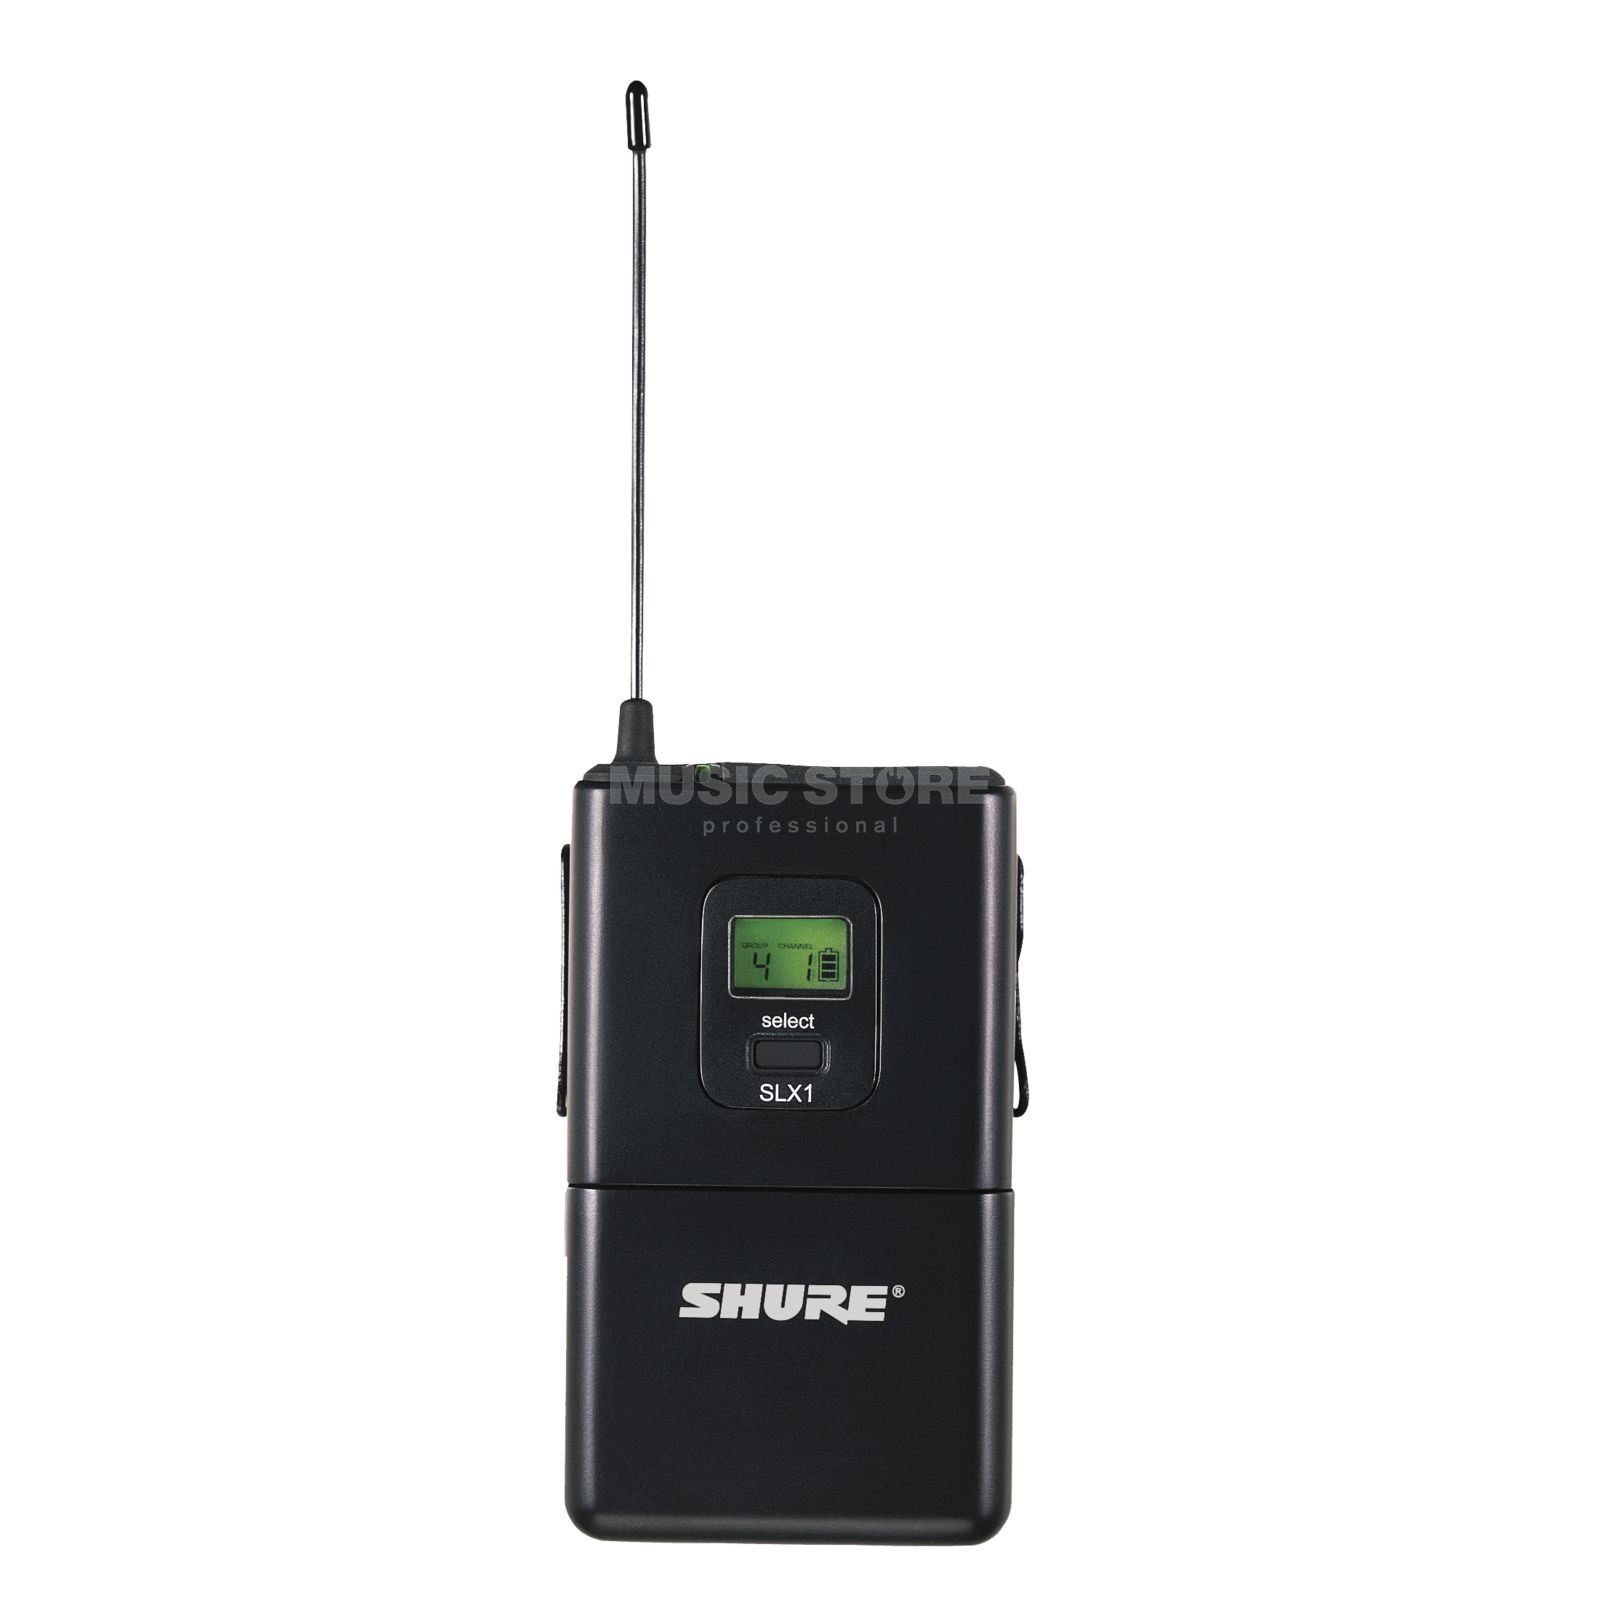 Shure SLX1 Wireless Bodypack Transmitter, S6, Channel 70 Produktbillede